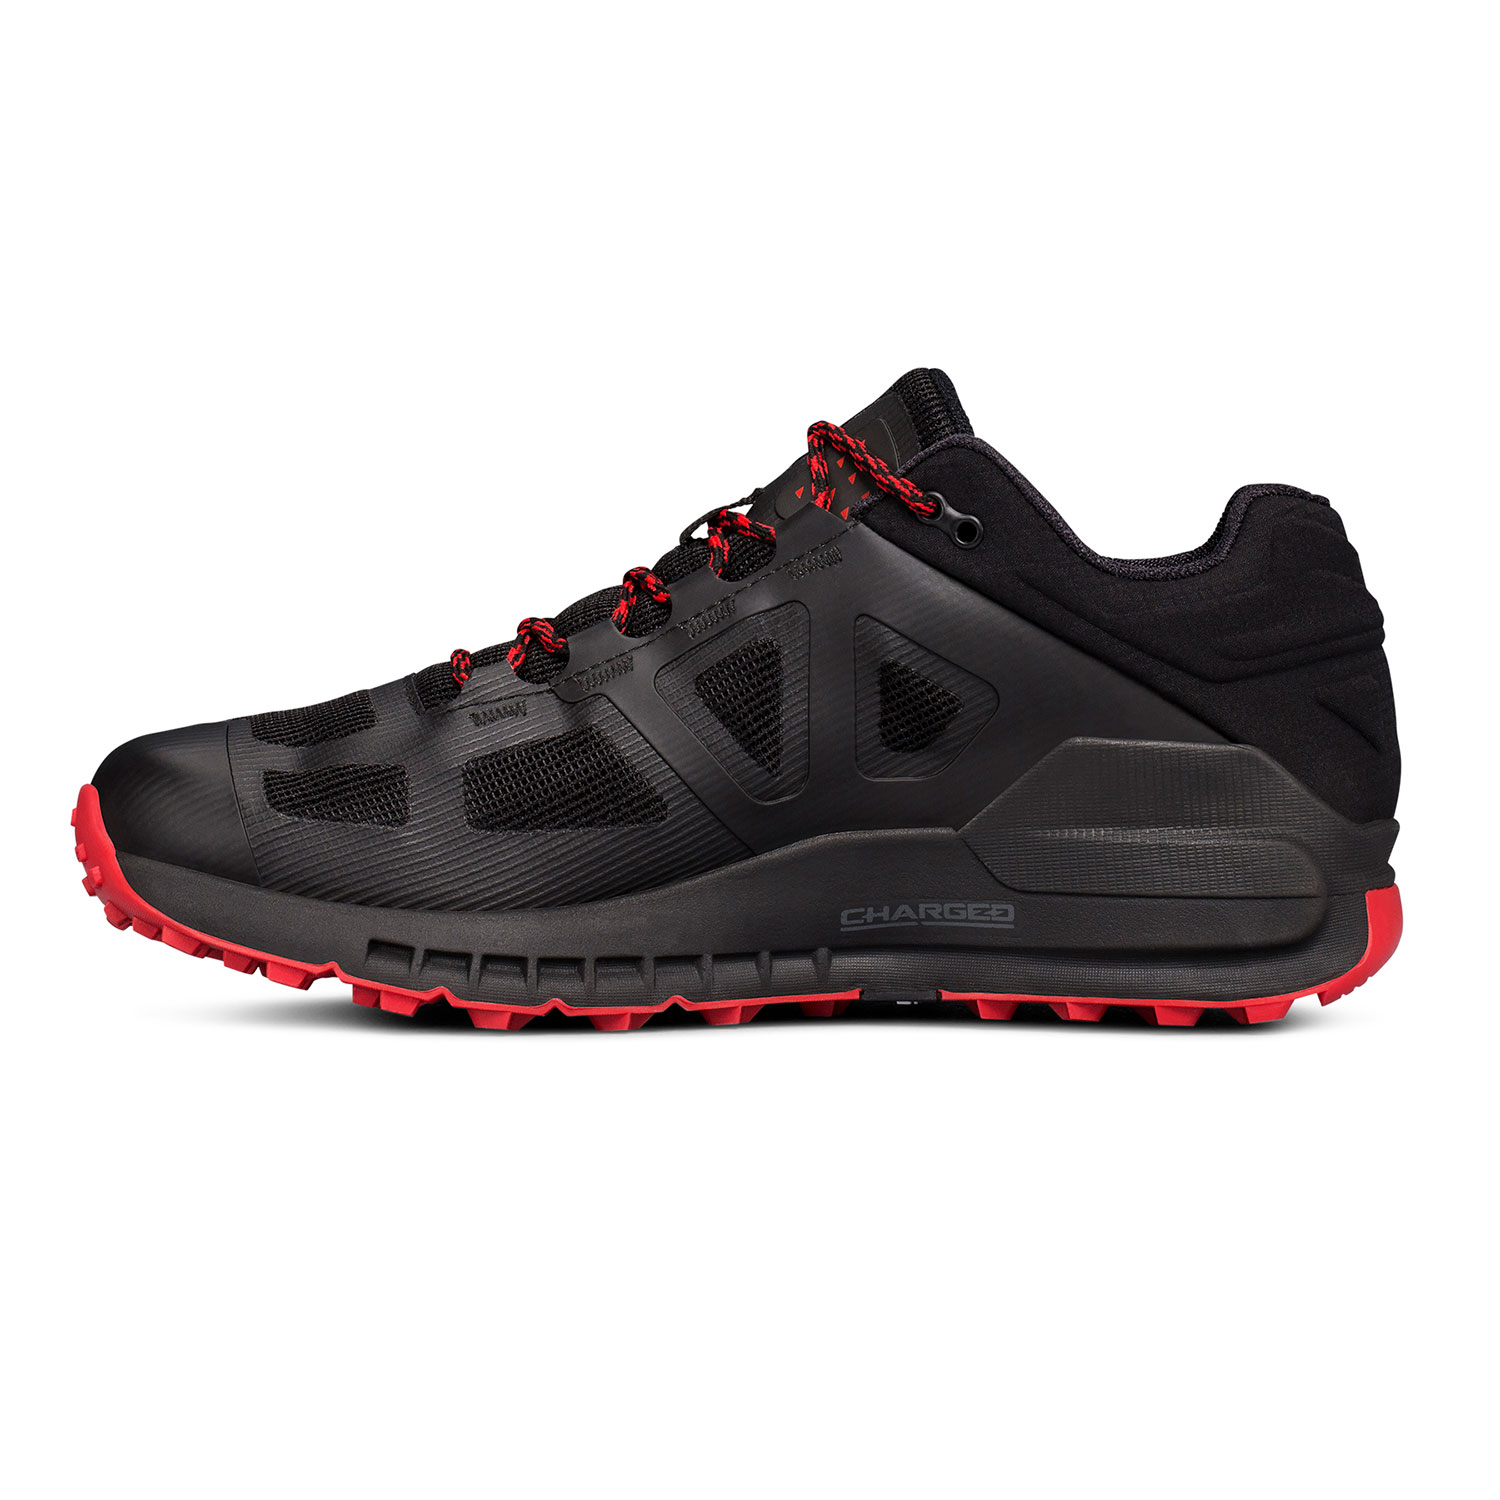 Under Armour Verge 2.0 Low GORE-TEX Hiking Shoes